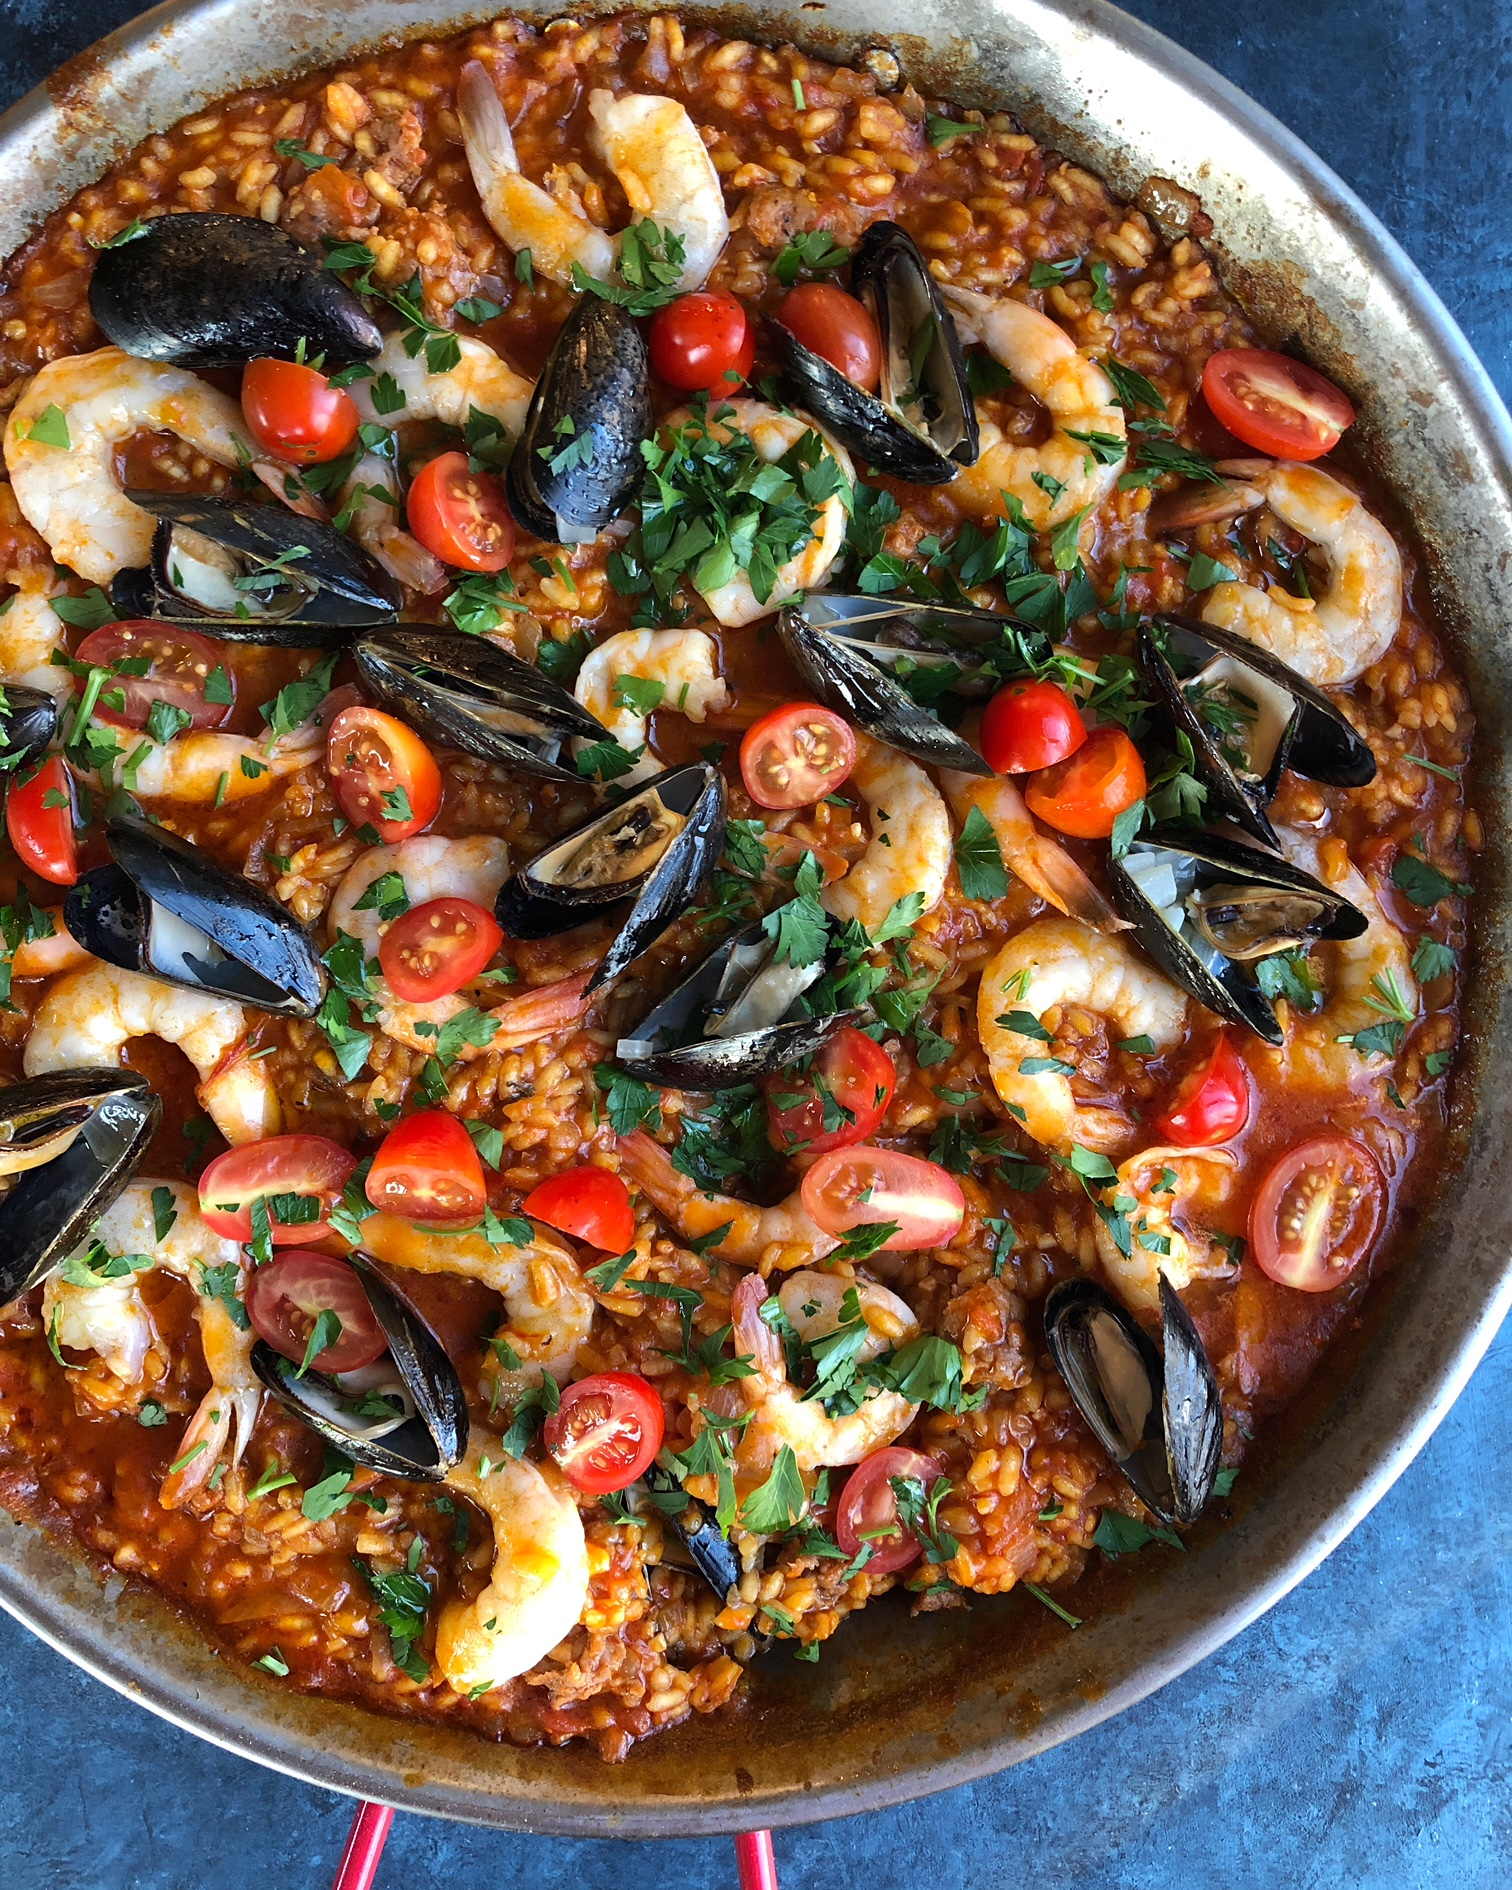 Seafood Paella!!!! Easy, delicious and flavorful Seafood Paella that you can make at home! Takes some time but it's well worth it!